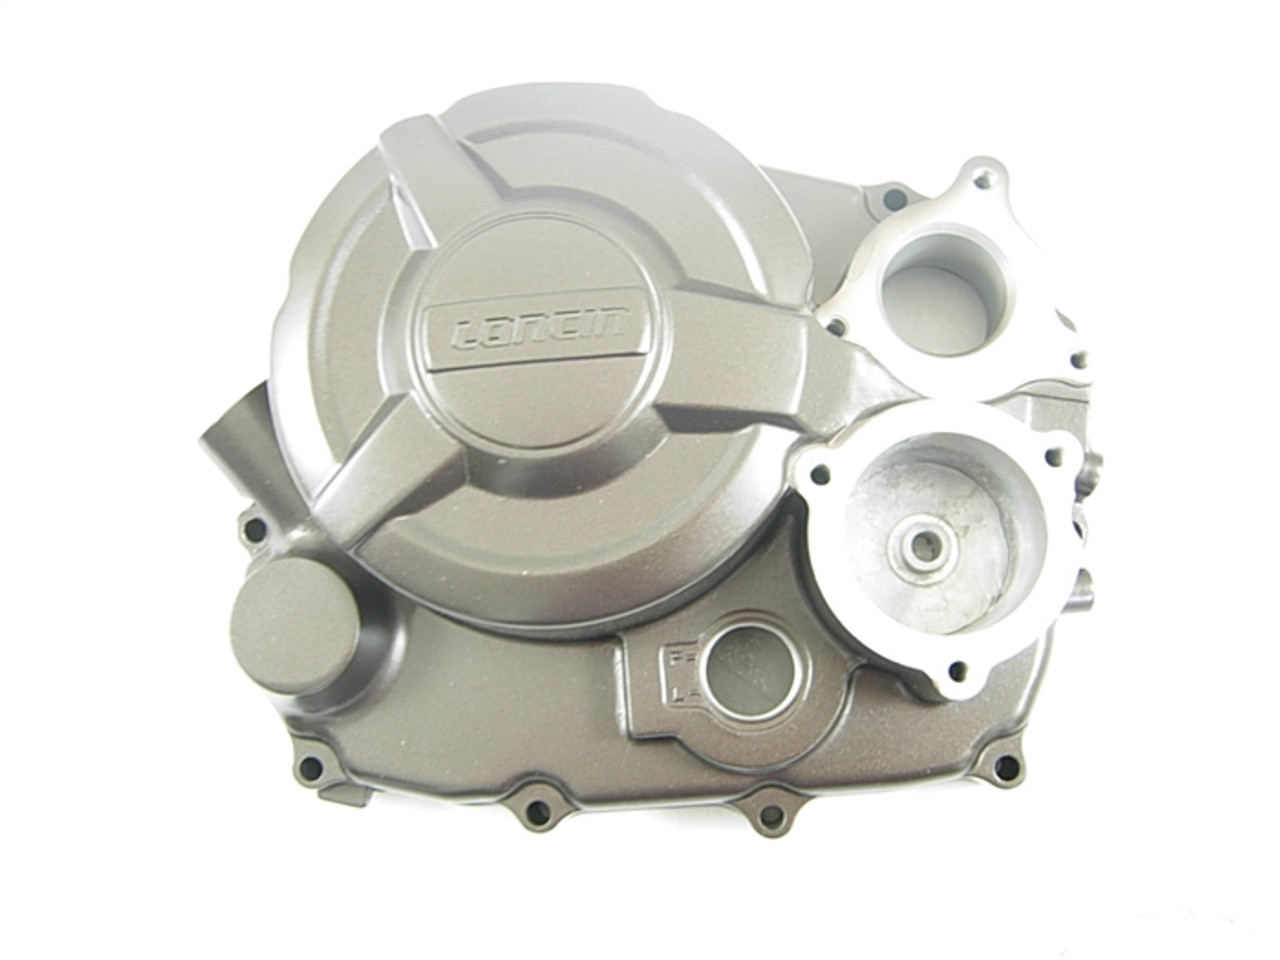 ENGINE COVER /CLUTCH COVER RIGHT SIDE 13802-A212-4